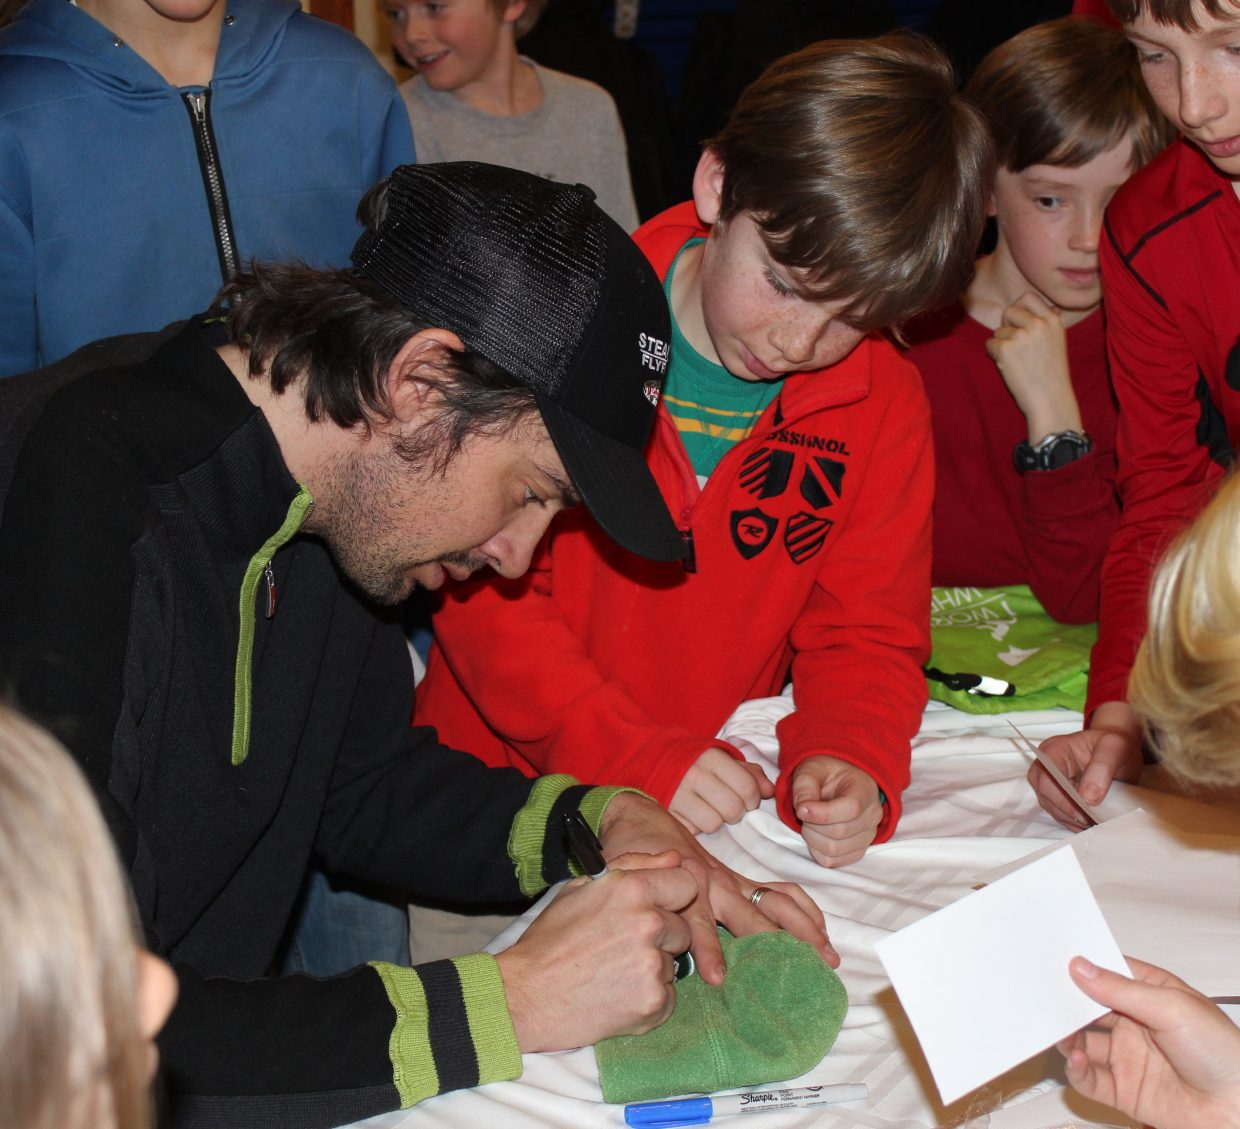 """Johnny Spillane, an Emerald Mountain School alumni who won his third Olympic silver medal in Nordic combined at the 2010 Games in Vancouver, shared his experiences and answered questions for students at the school Wednesday. He talked about how he loved the feeling of flying and about his experiences living in the Olympic Village and meeting other athletes from around the world. Spillane also signed autographs for each of the students. """"We are so fortunate to have such a gracious Olympian willing to give his time bringing the Olympic experience to life for the students at his alma mater,"""" Head of School Sharon Mensing said."""